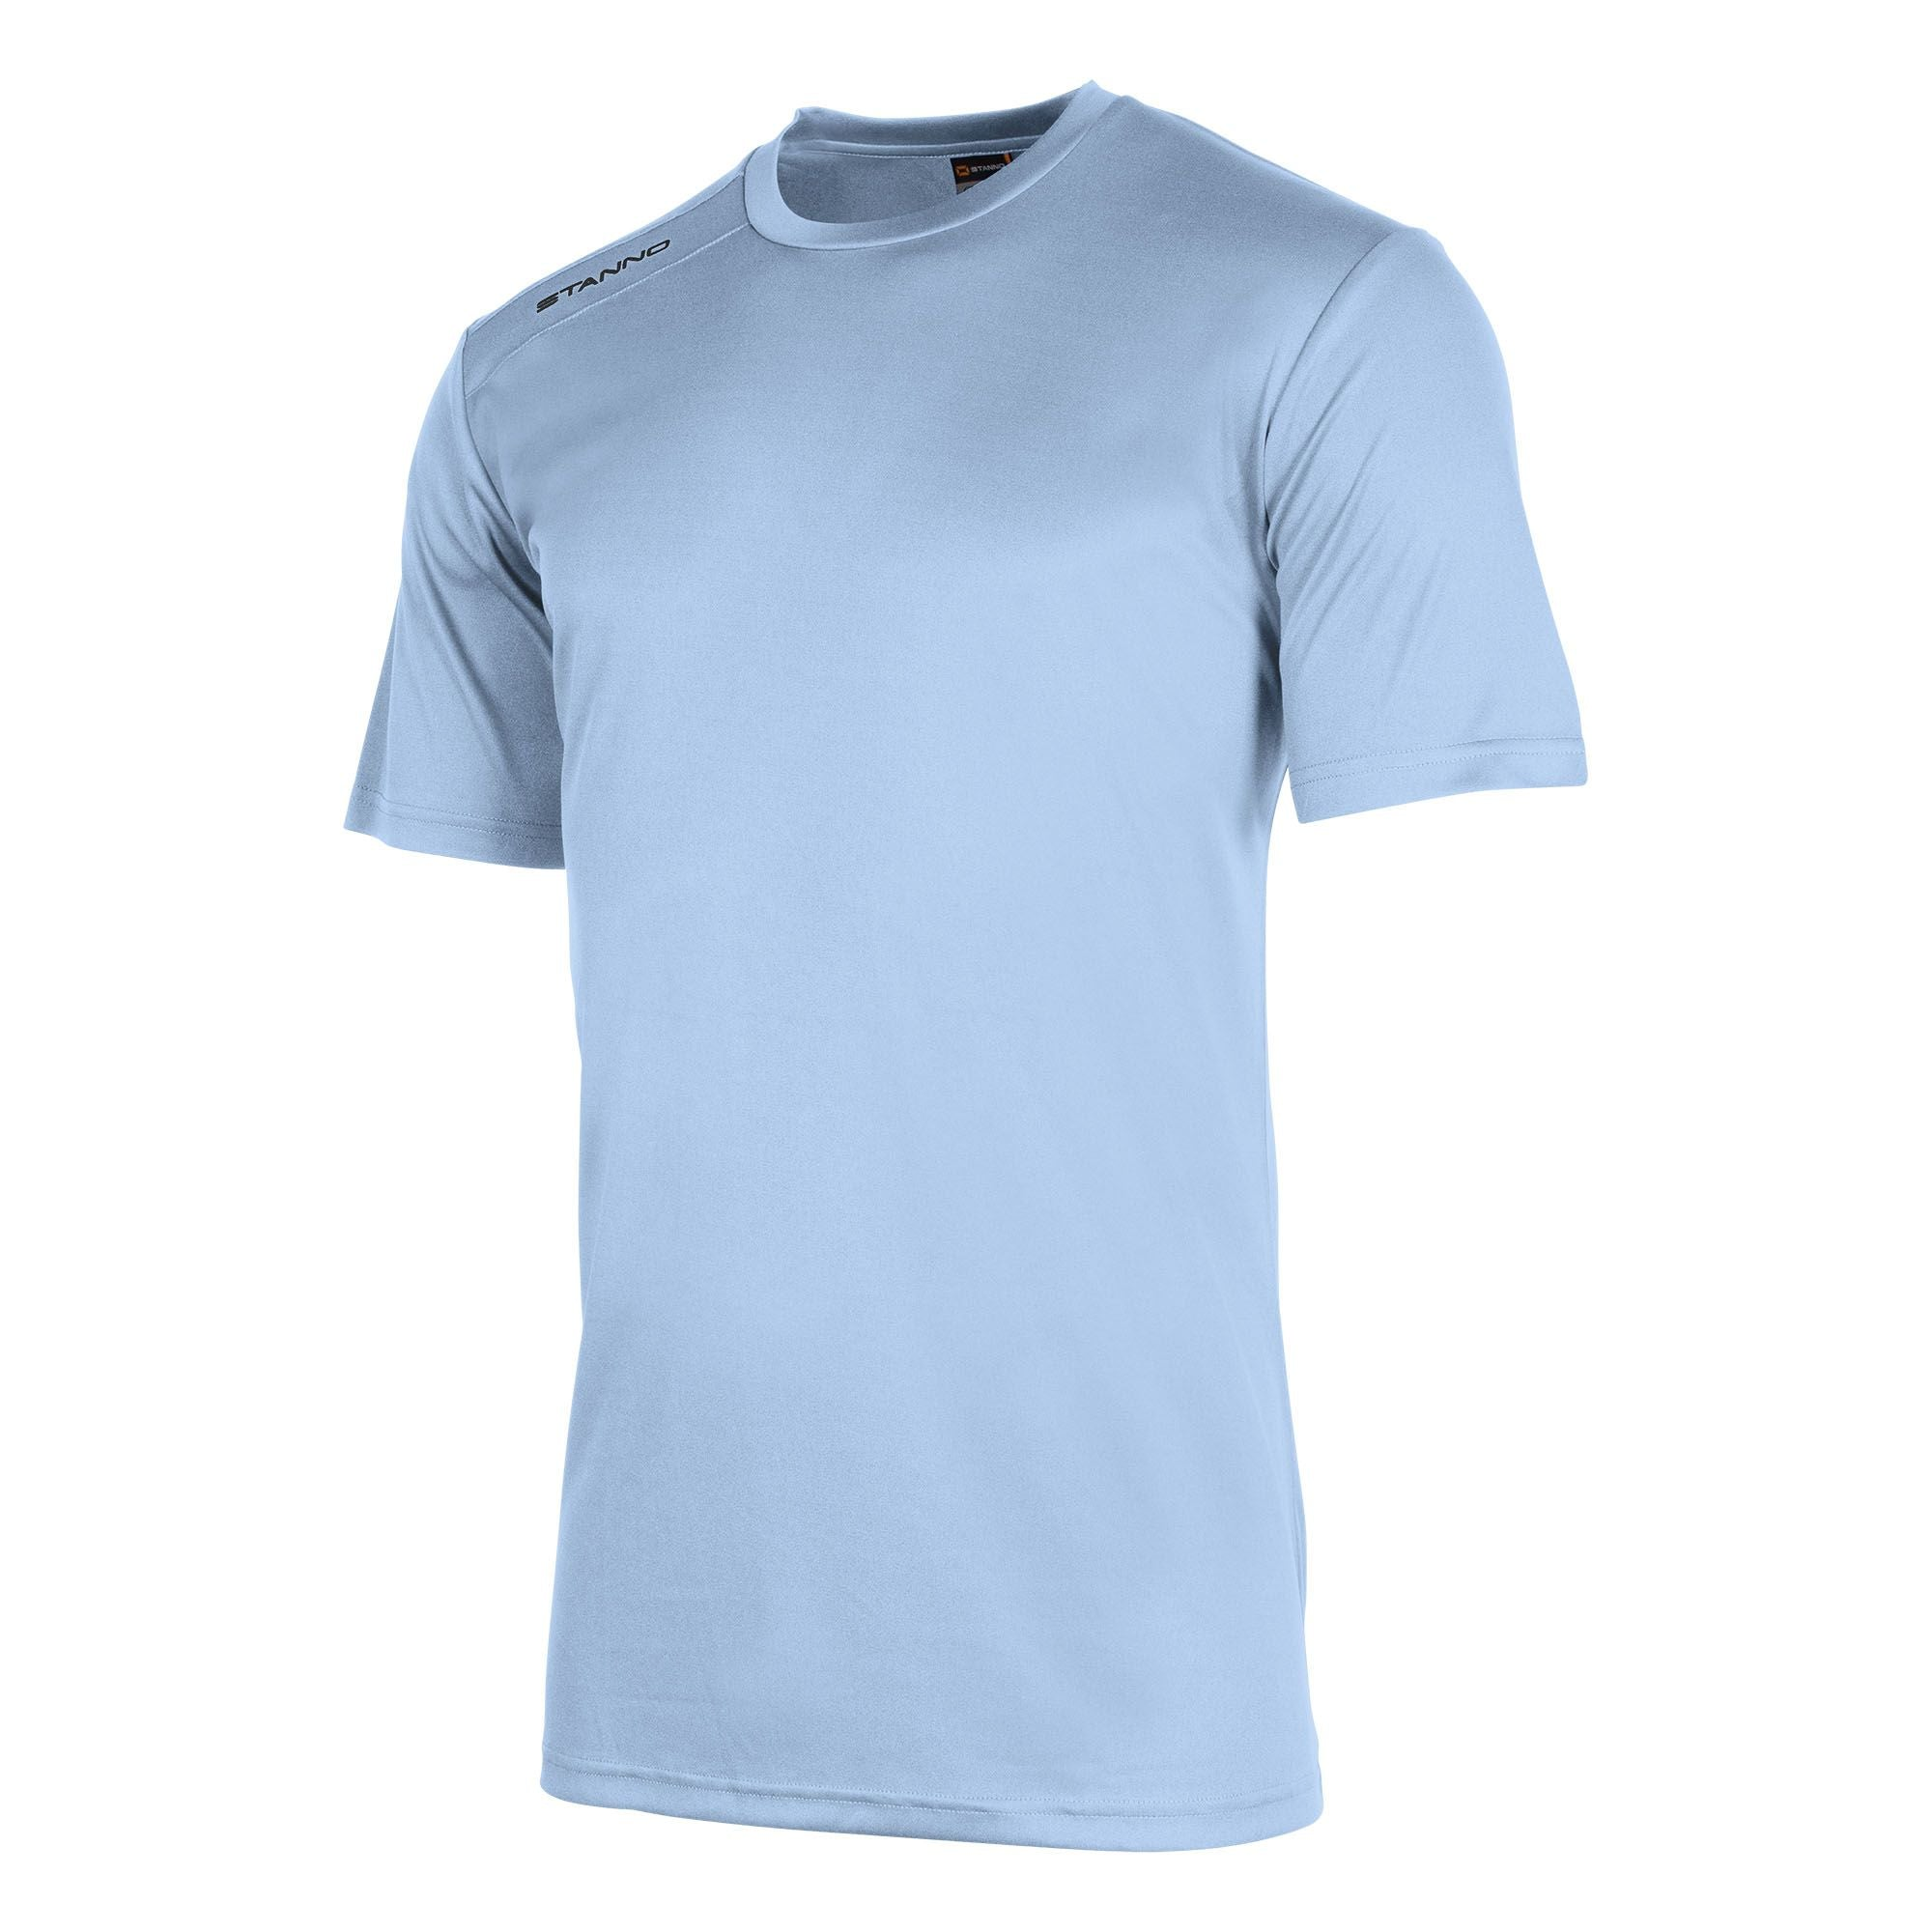 Front of Stanno field short sleeve shirt in shoky blue with black Stanno logo on right shoulder